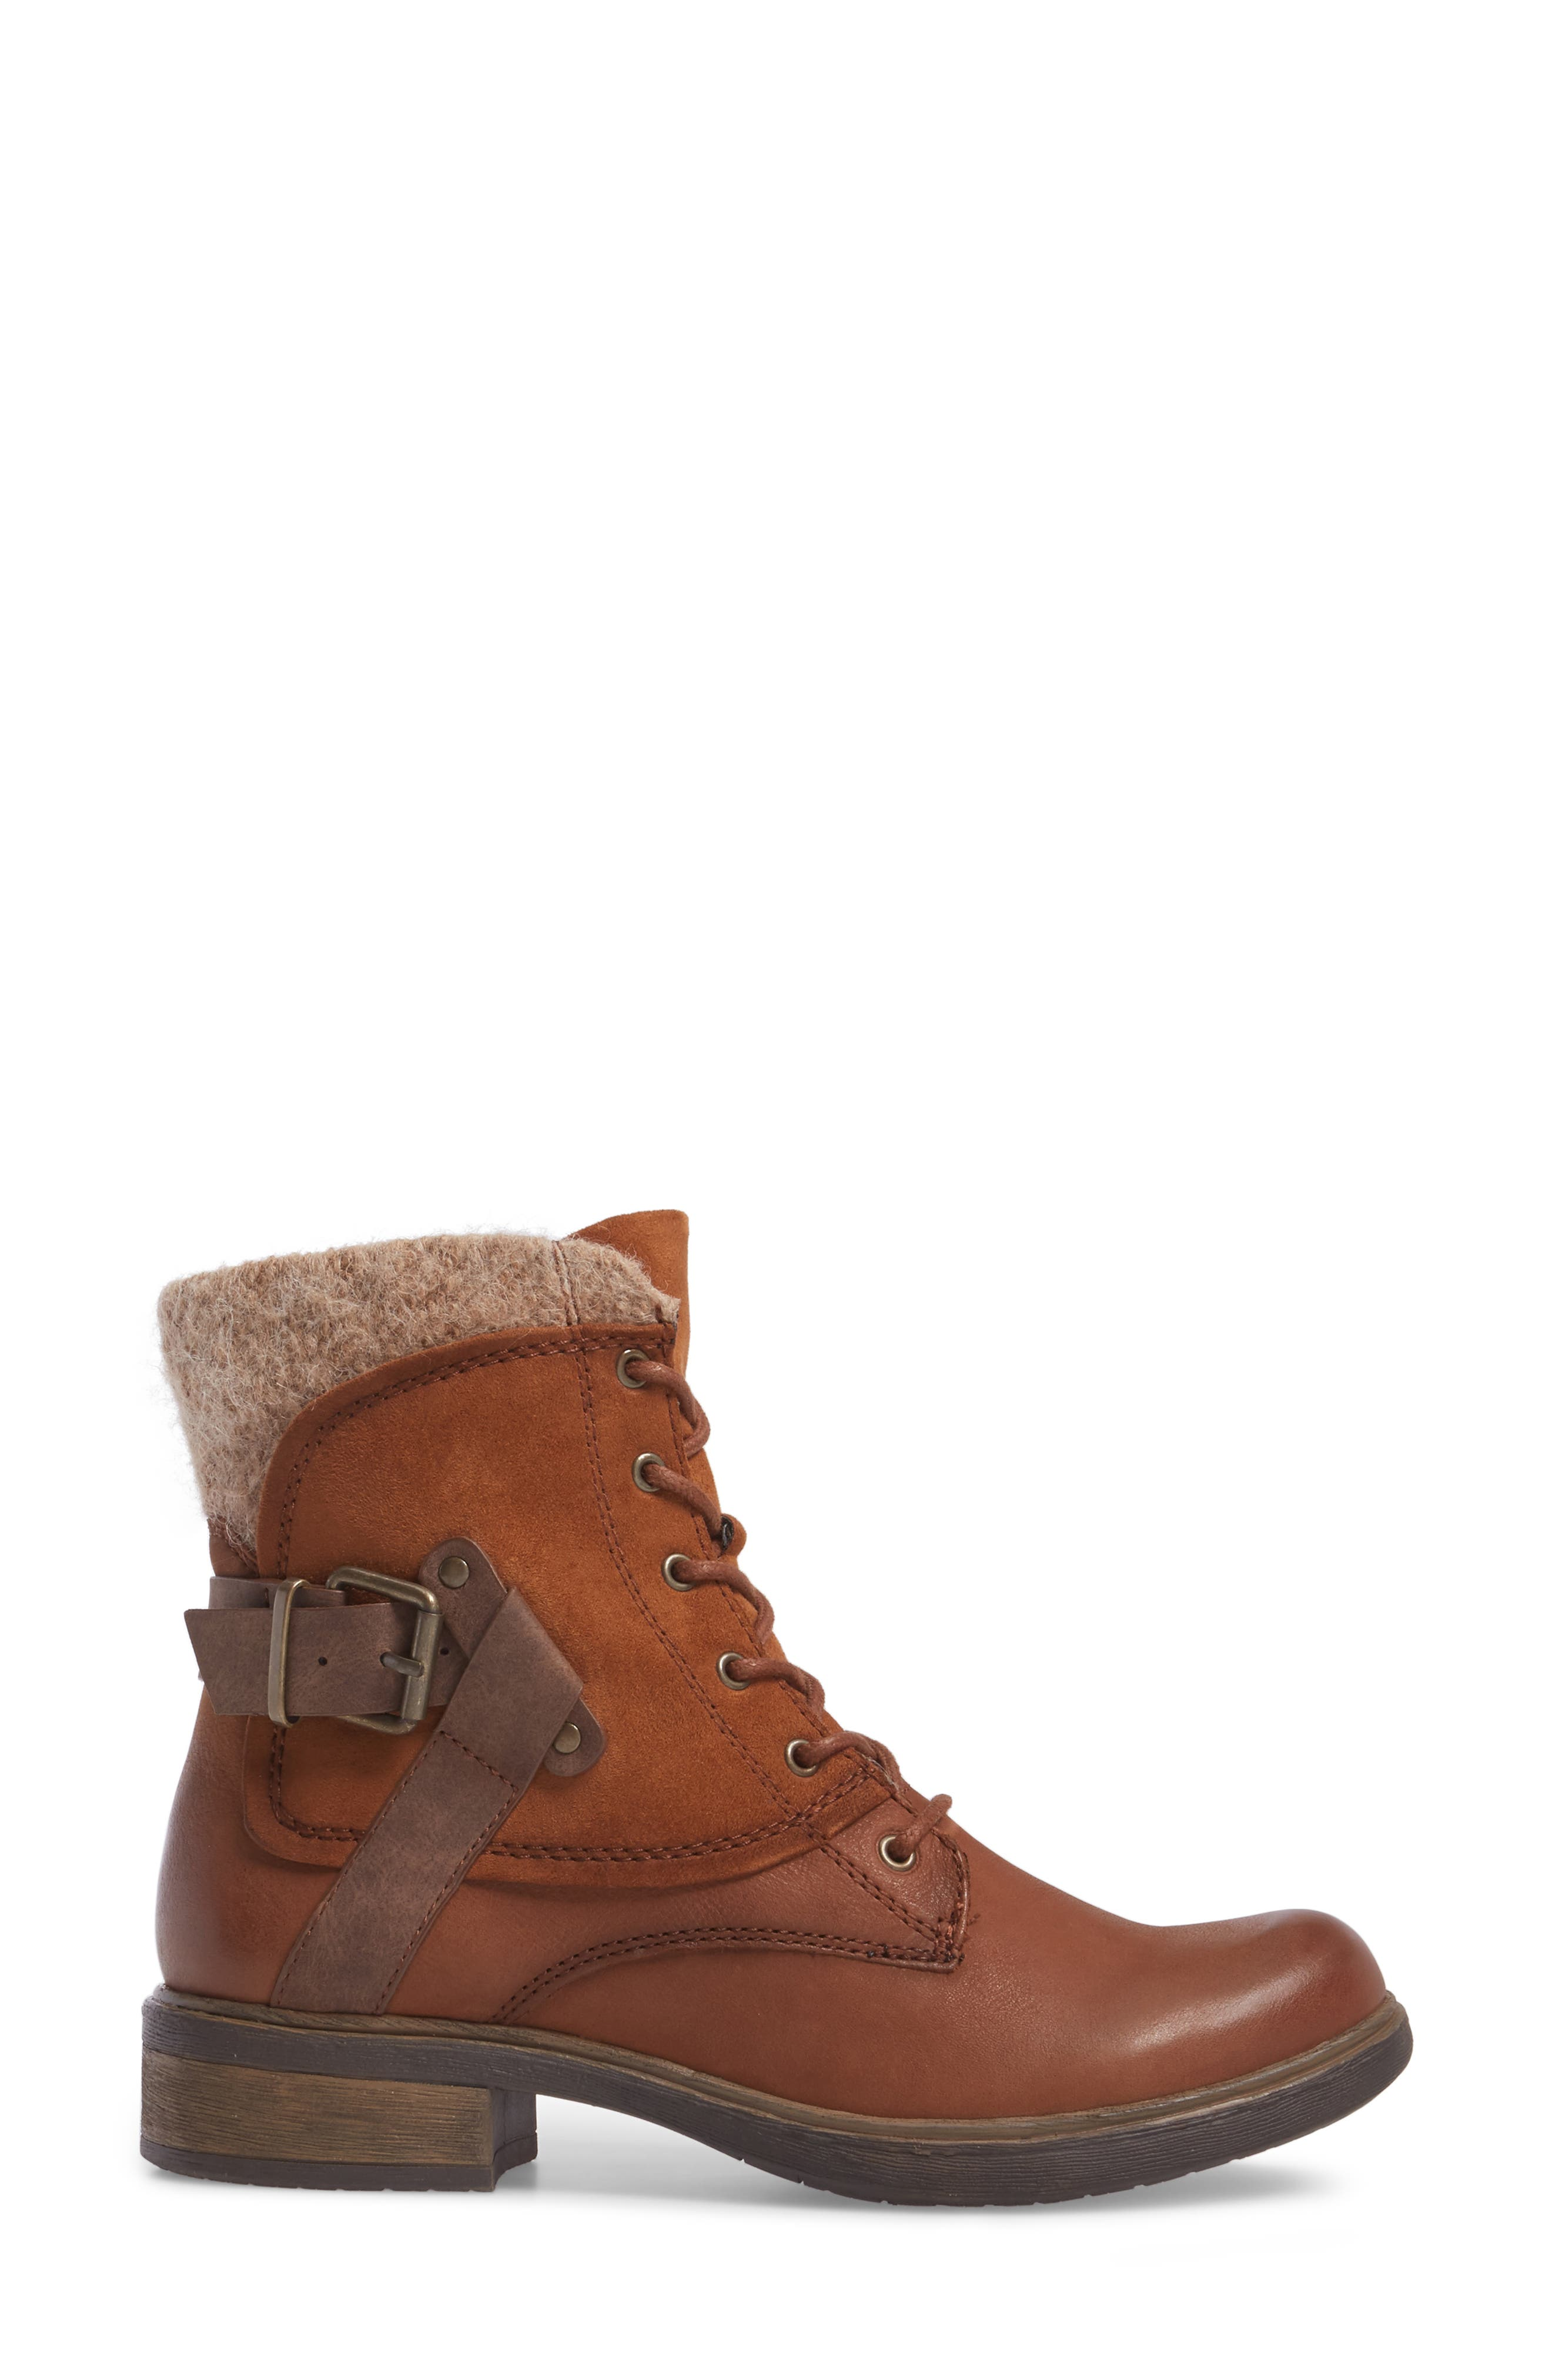 Helios Lace-Up Bootie,                             Alternate thumbnail 3, color,                             Muscat Leather